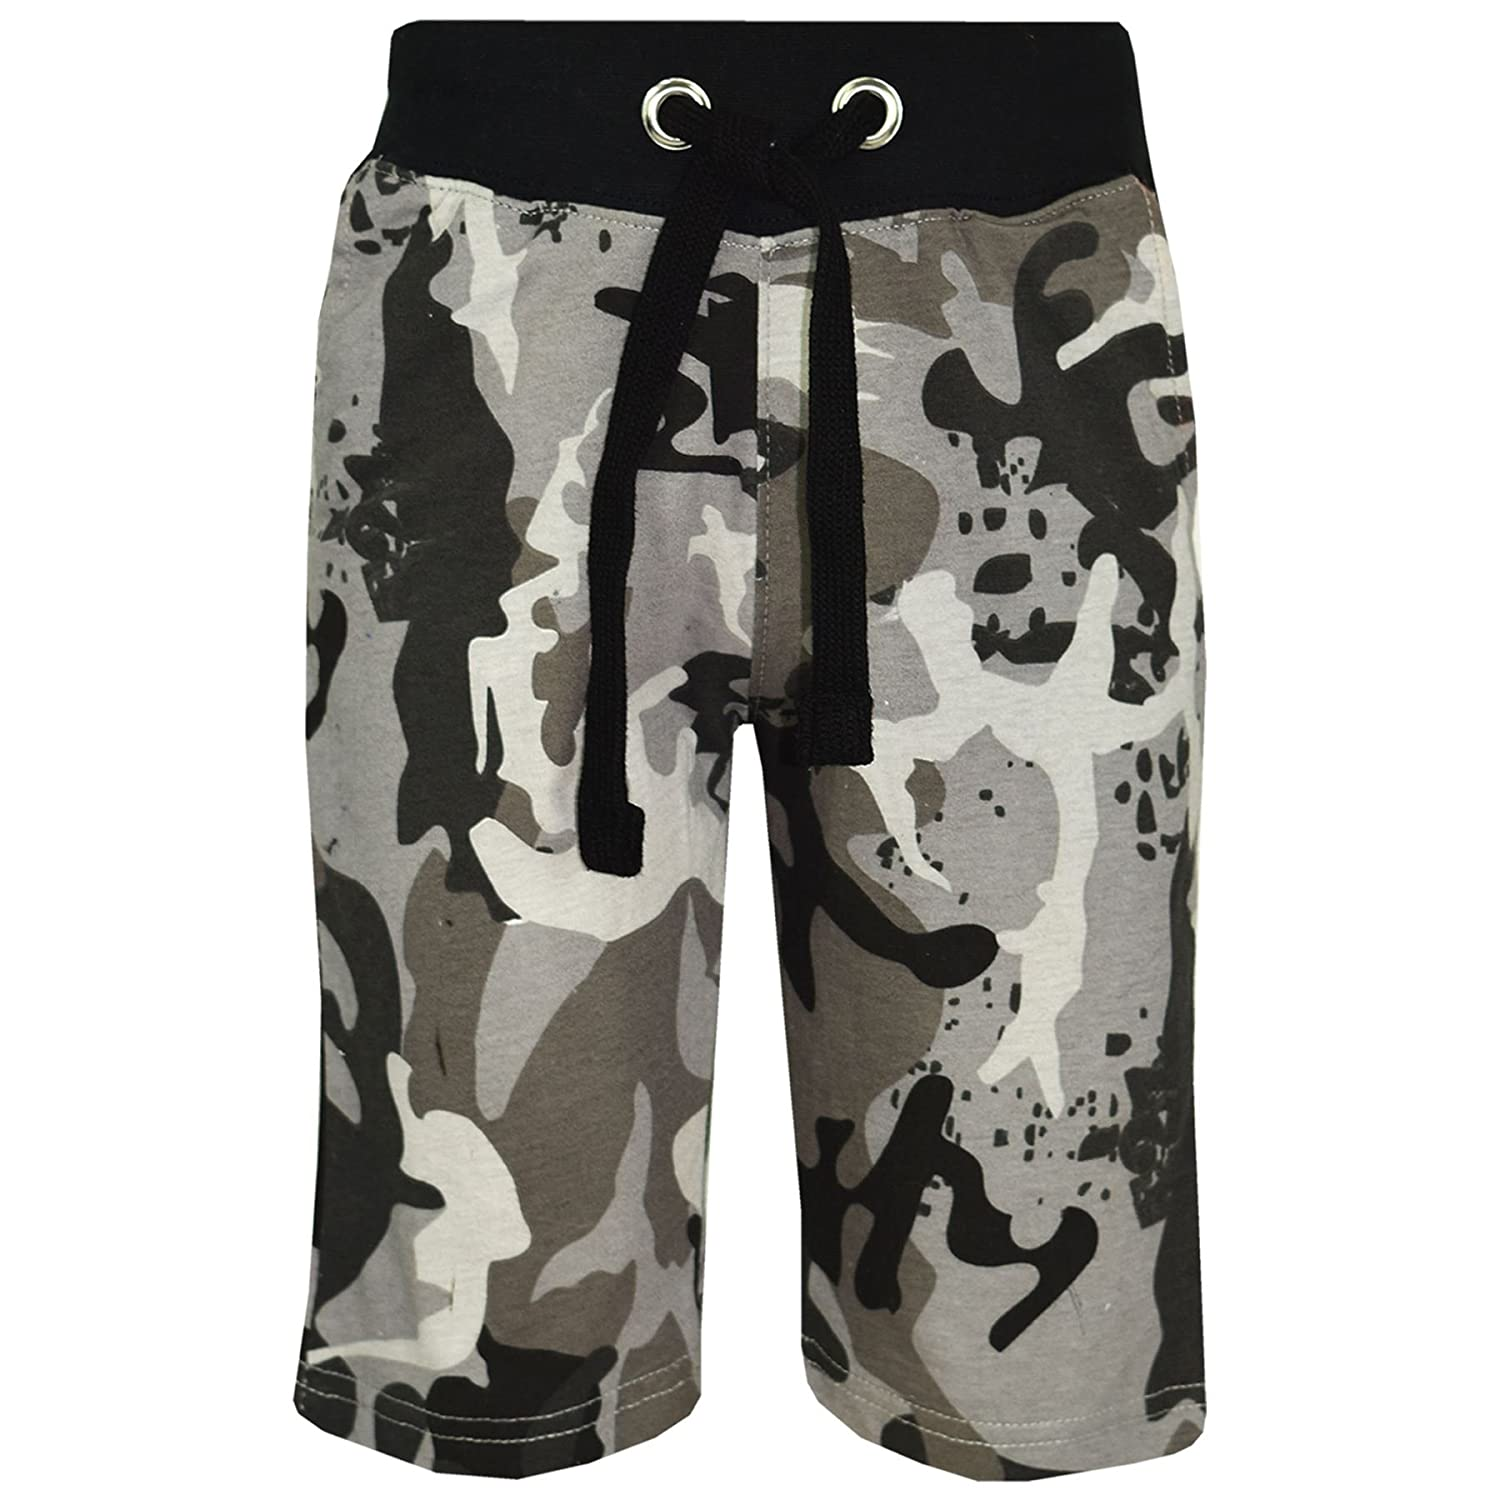 A2Z 4 Kids® Kids Shorts Girls Boys Designer's Charcoal Camouflage Print Cotton Chino Shorts Casual Knee Length Half Pant Age 5 6 7 8 9 10 11 12 13 Years